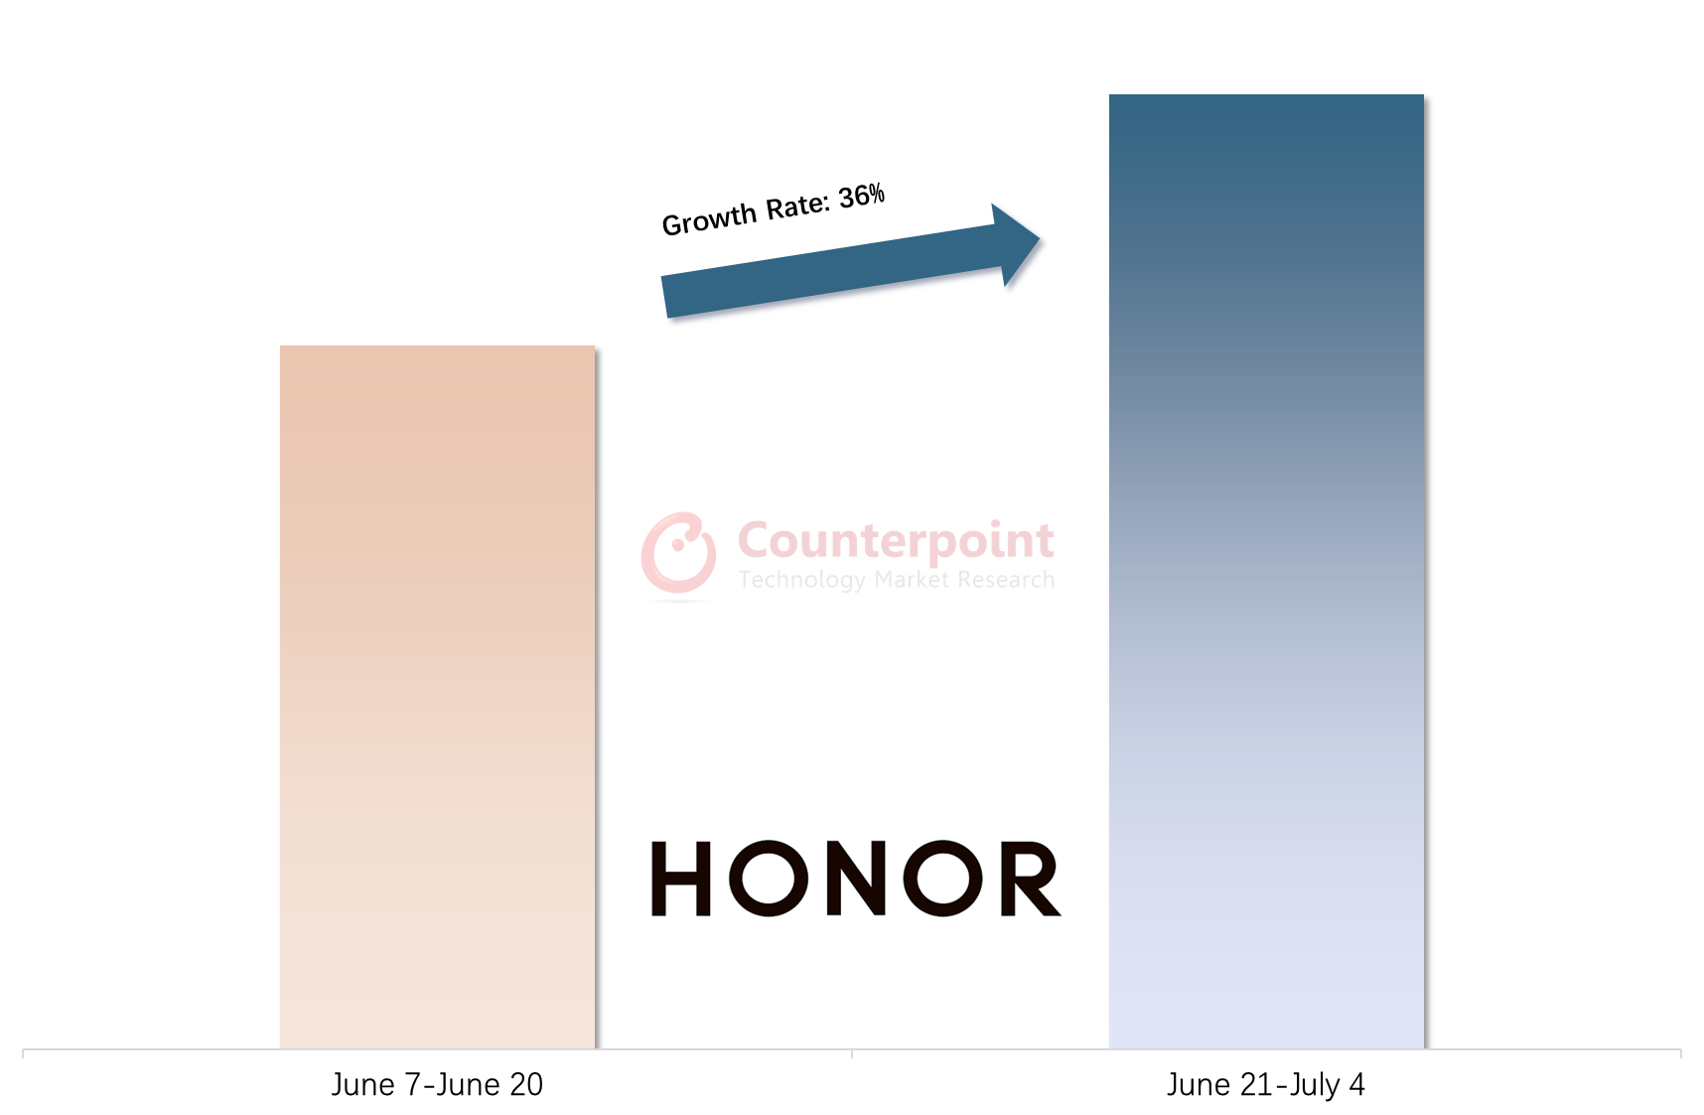 Counterpoint Research HONOR Growth Rate